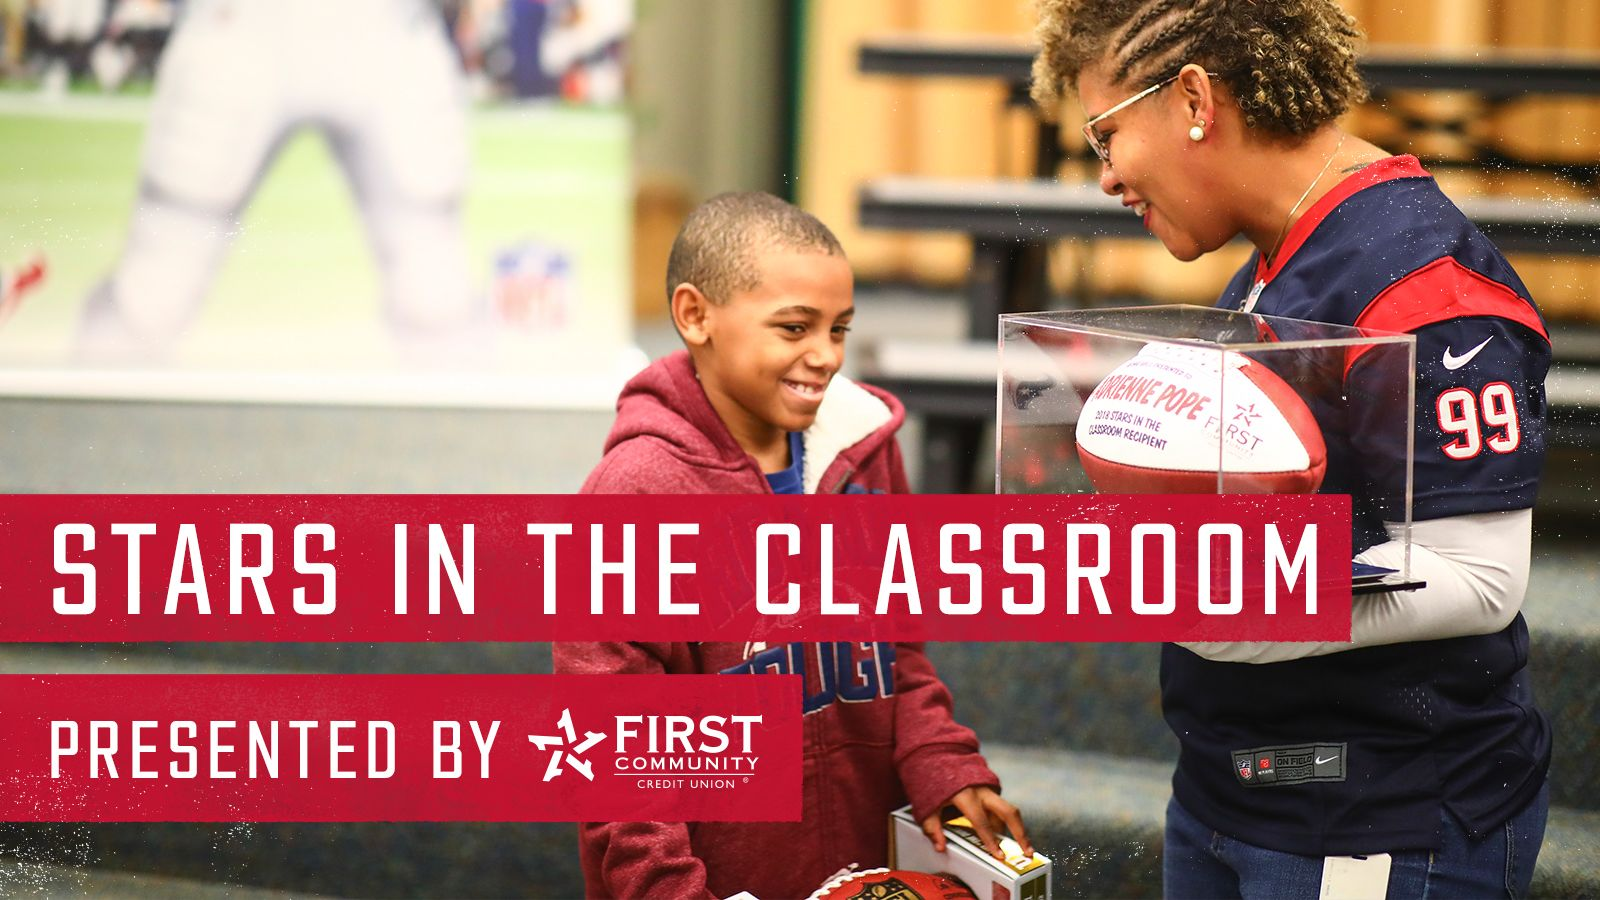 Stars in the Classroom. presented by First Community Credit Union